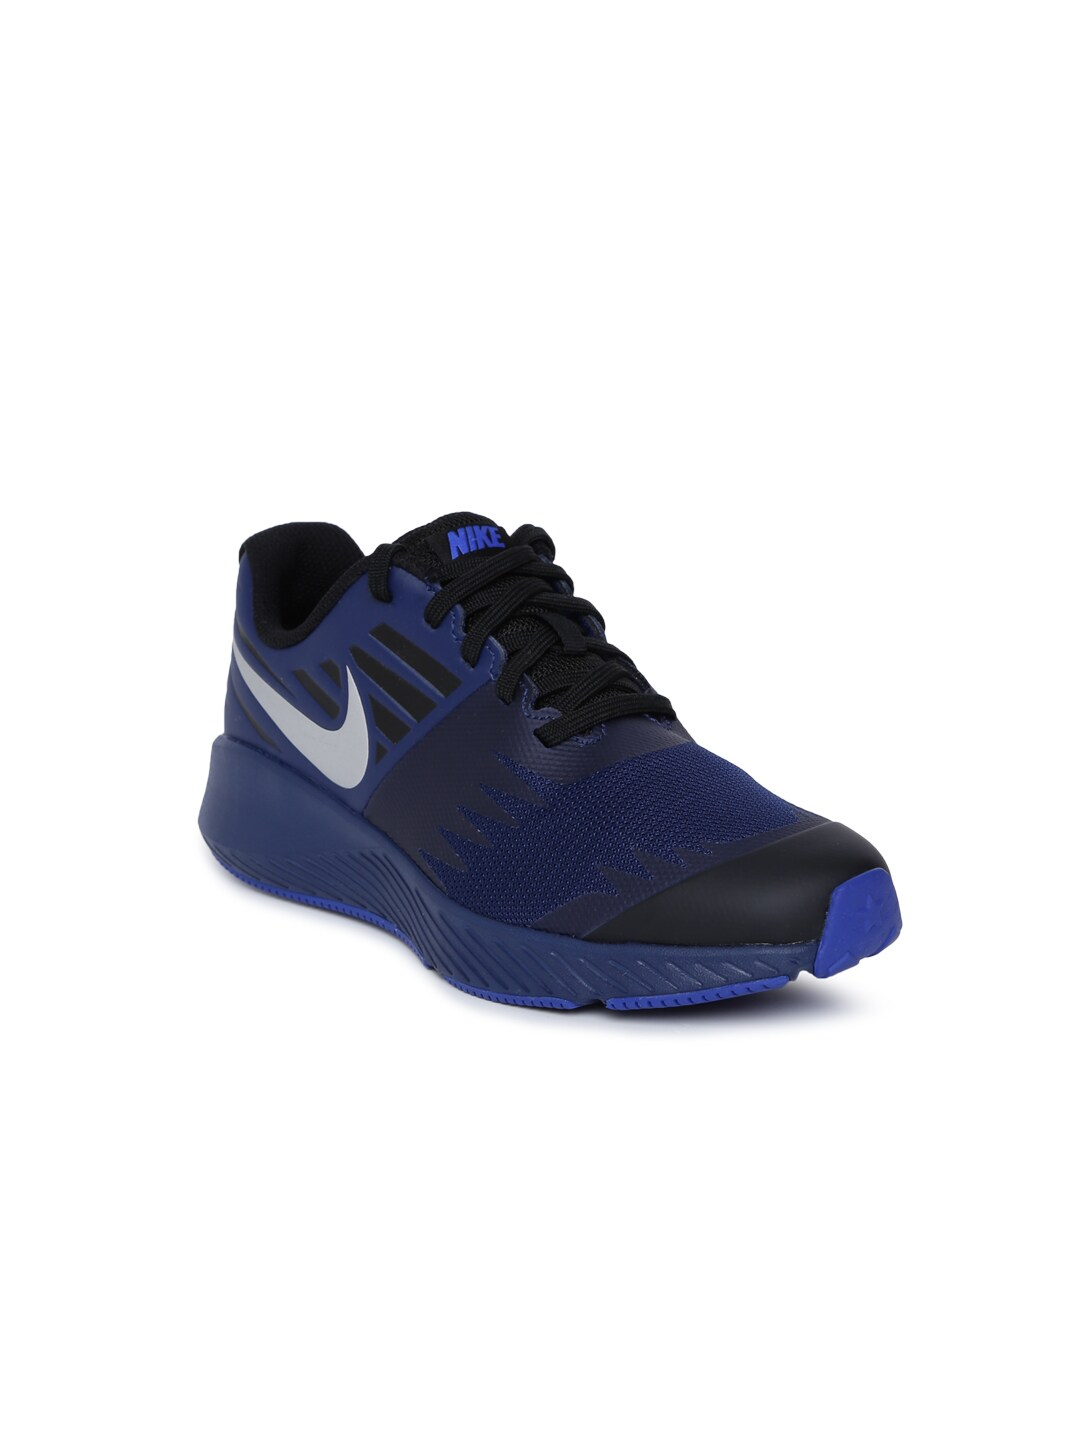 7755628826dd7 Boy s Nike Shoes - Buy Nike Shoes for Boys Online in India